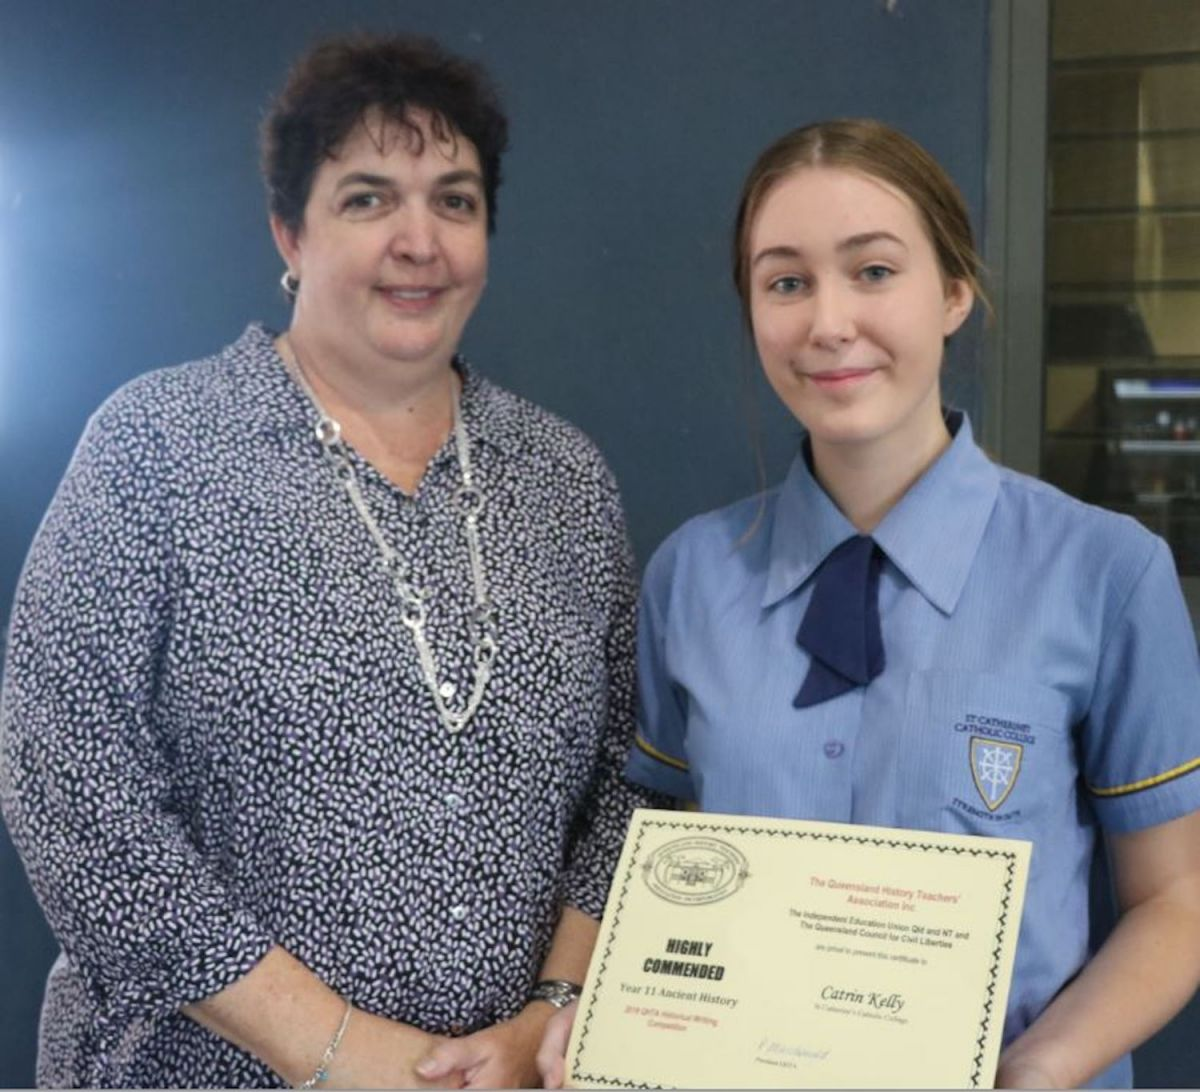 Praise received for history comp entrants